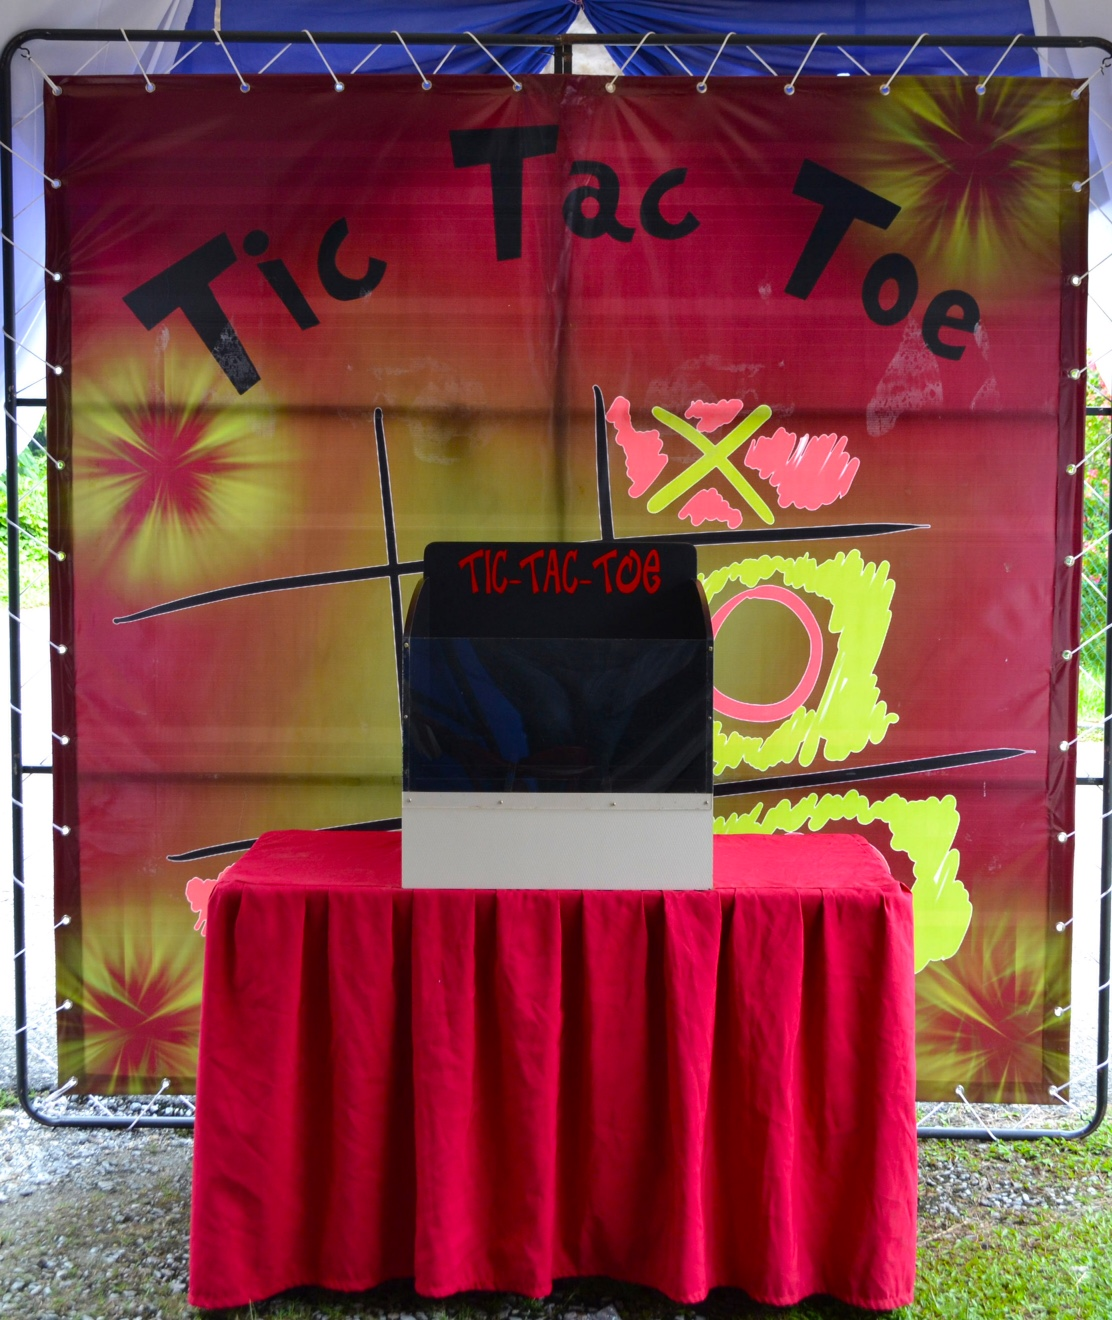 The most interesting and unconventional 'Tic-Tac-Toe' game can be found at Carnival Funtime.